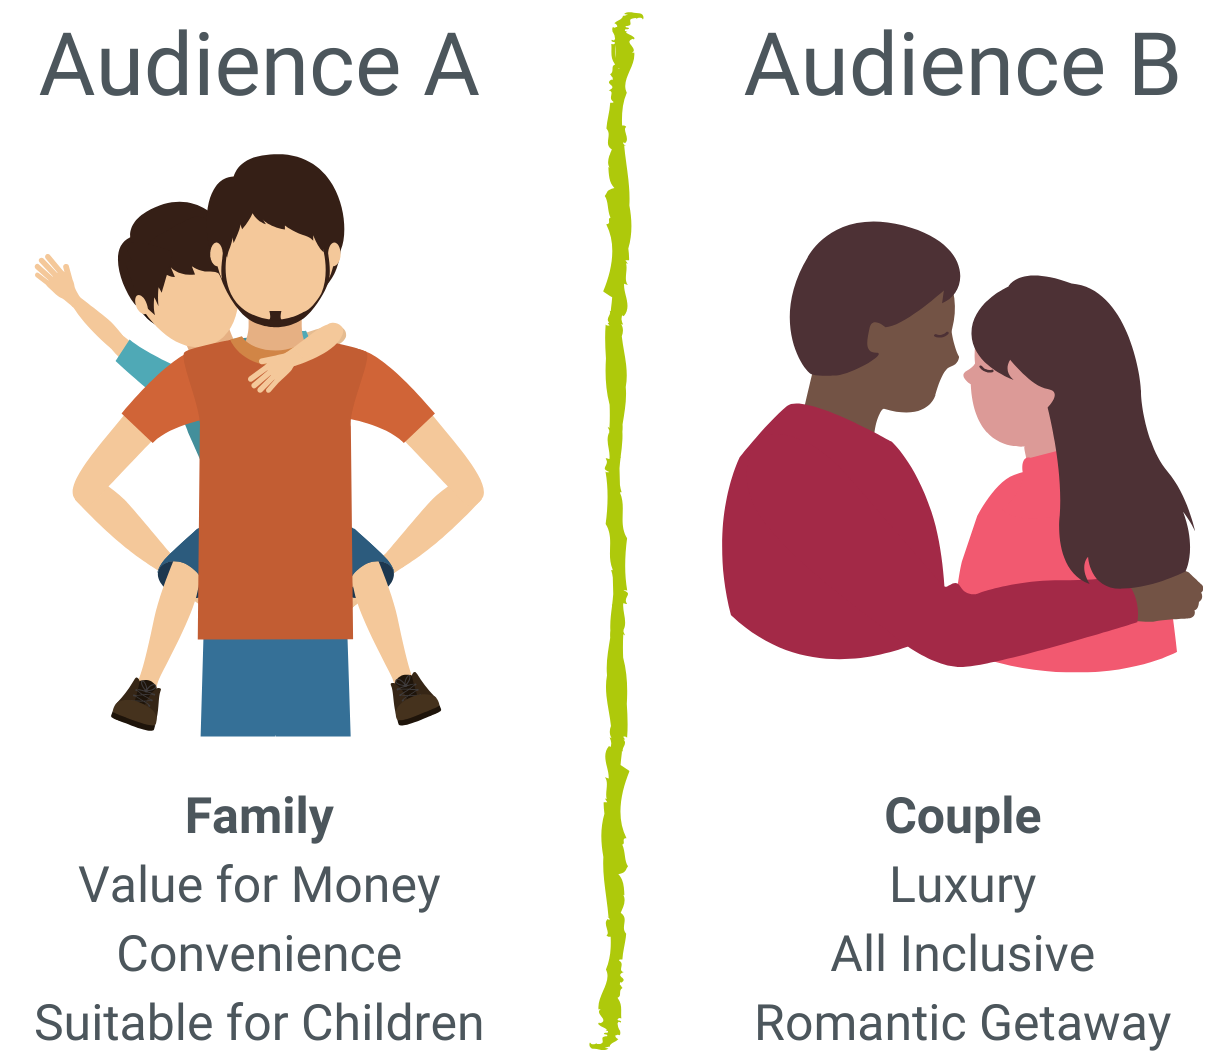 Audience Segments A and B